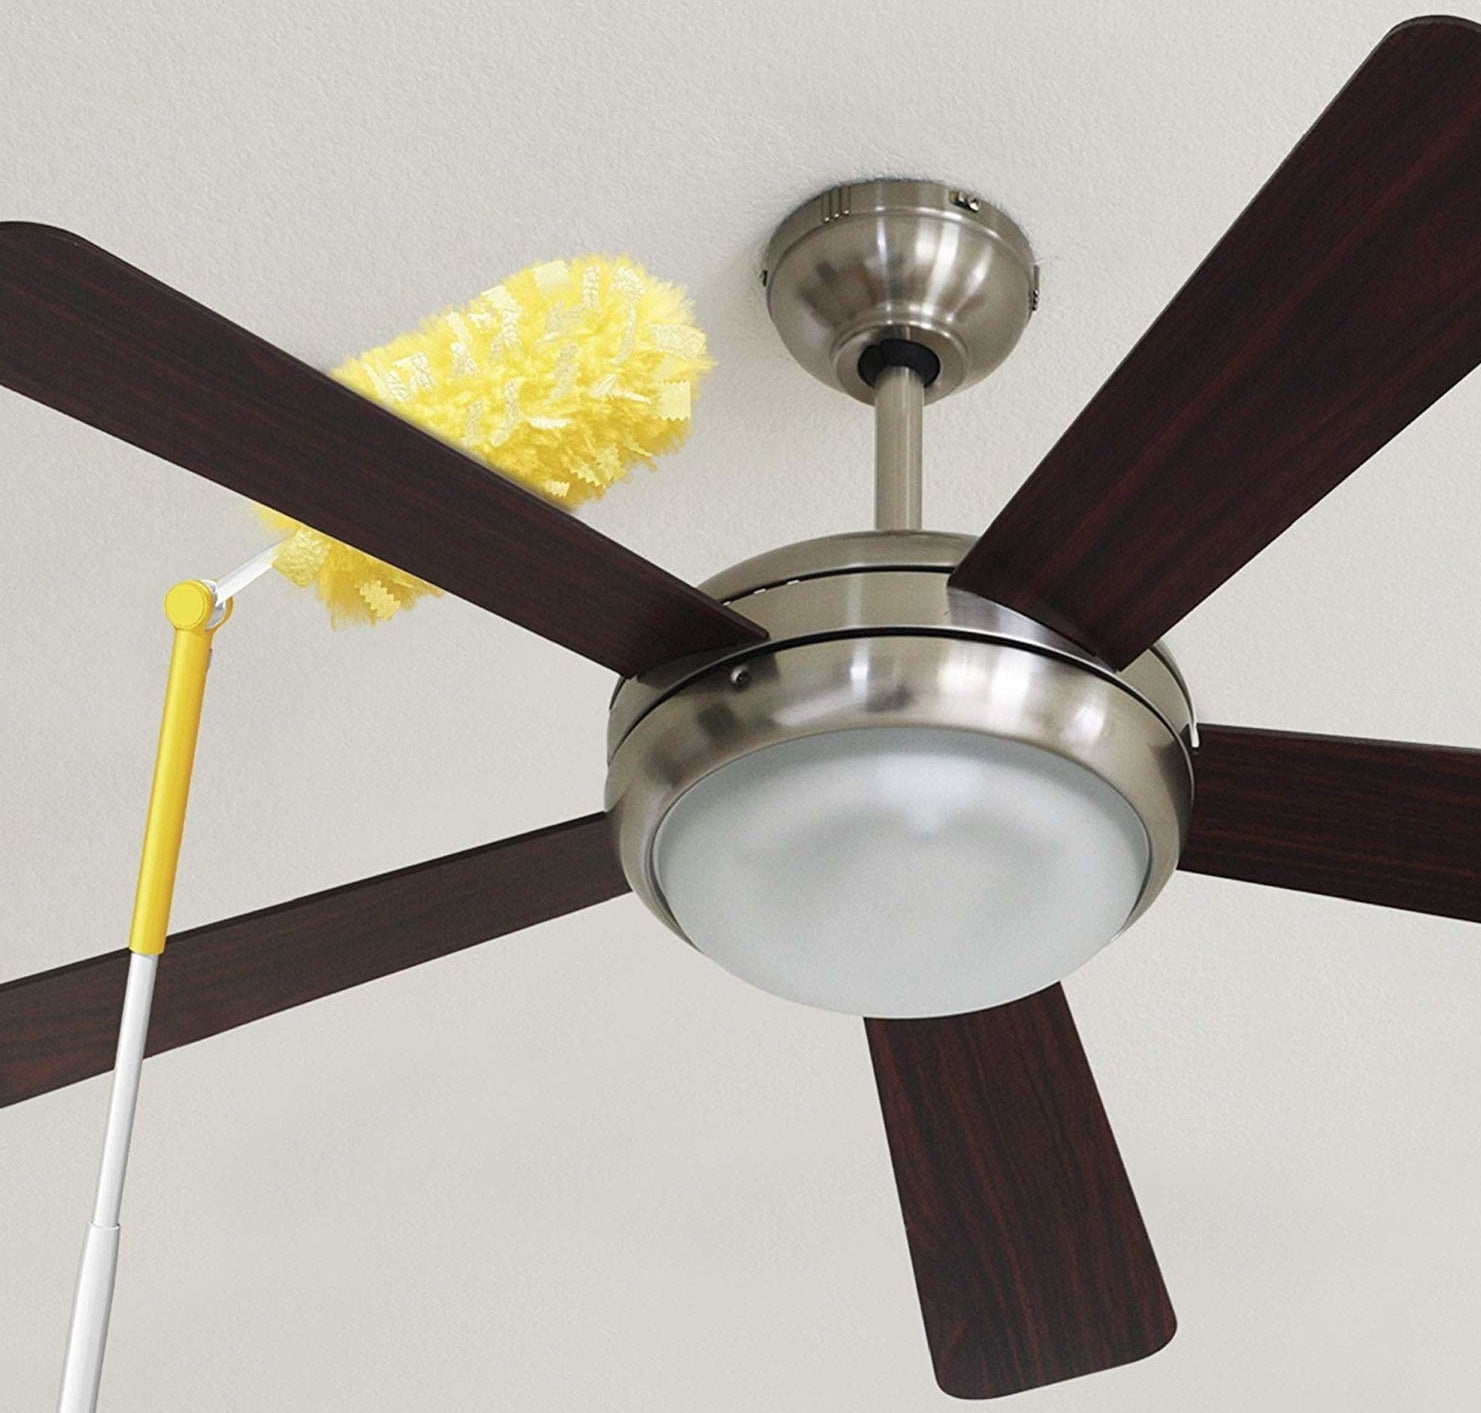 The duster used to clean the top of ceiling fan blades